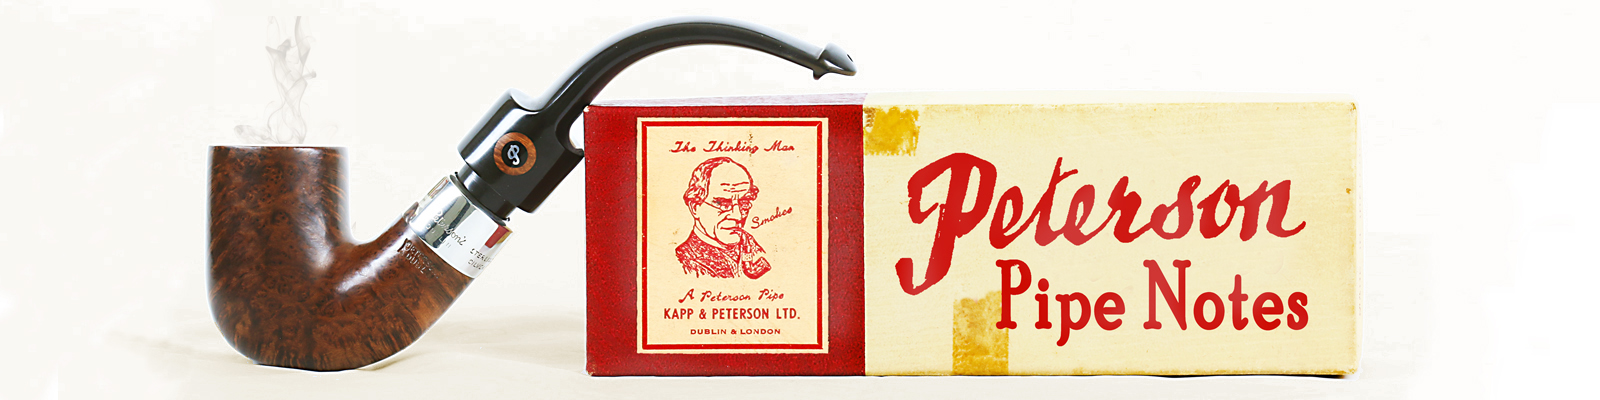 Peterson Pipe Notes